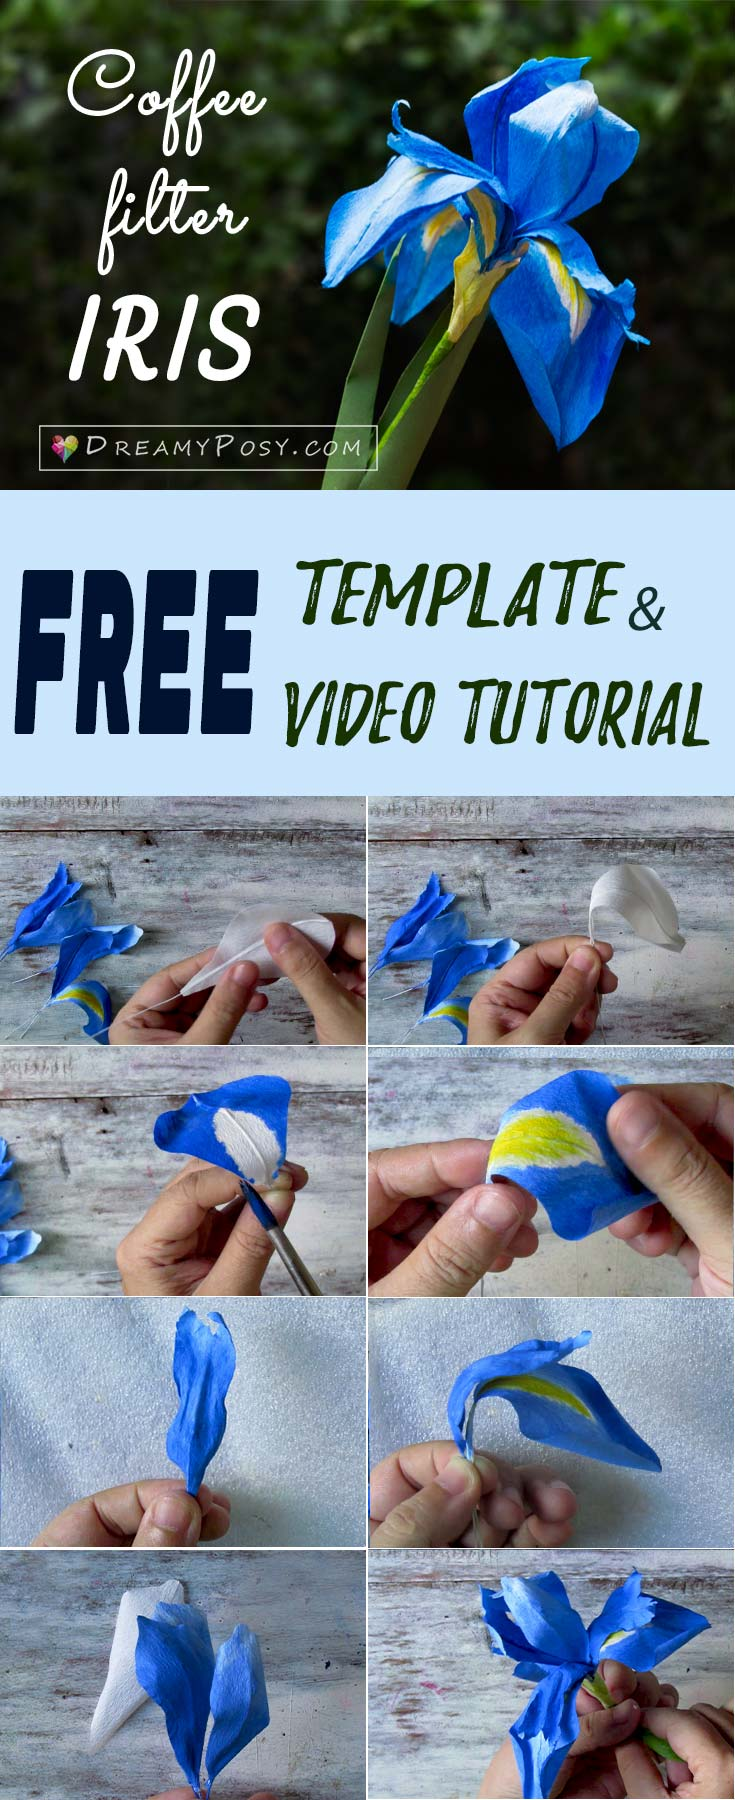 how to make paper iris flower  free template and full video